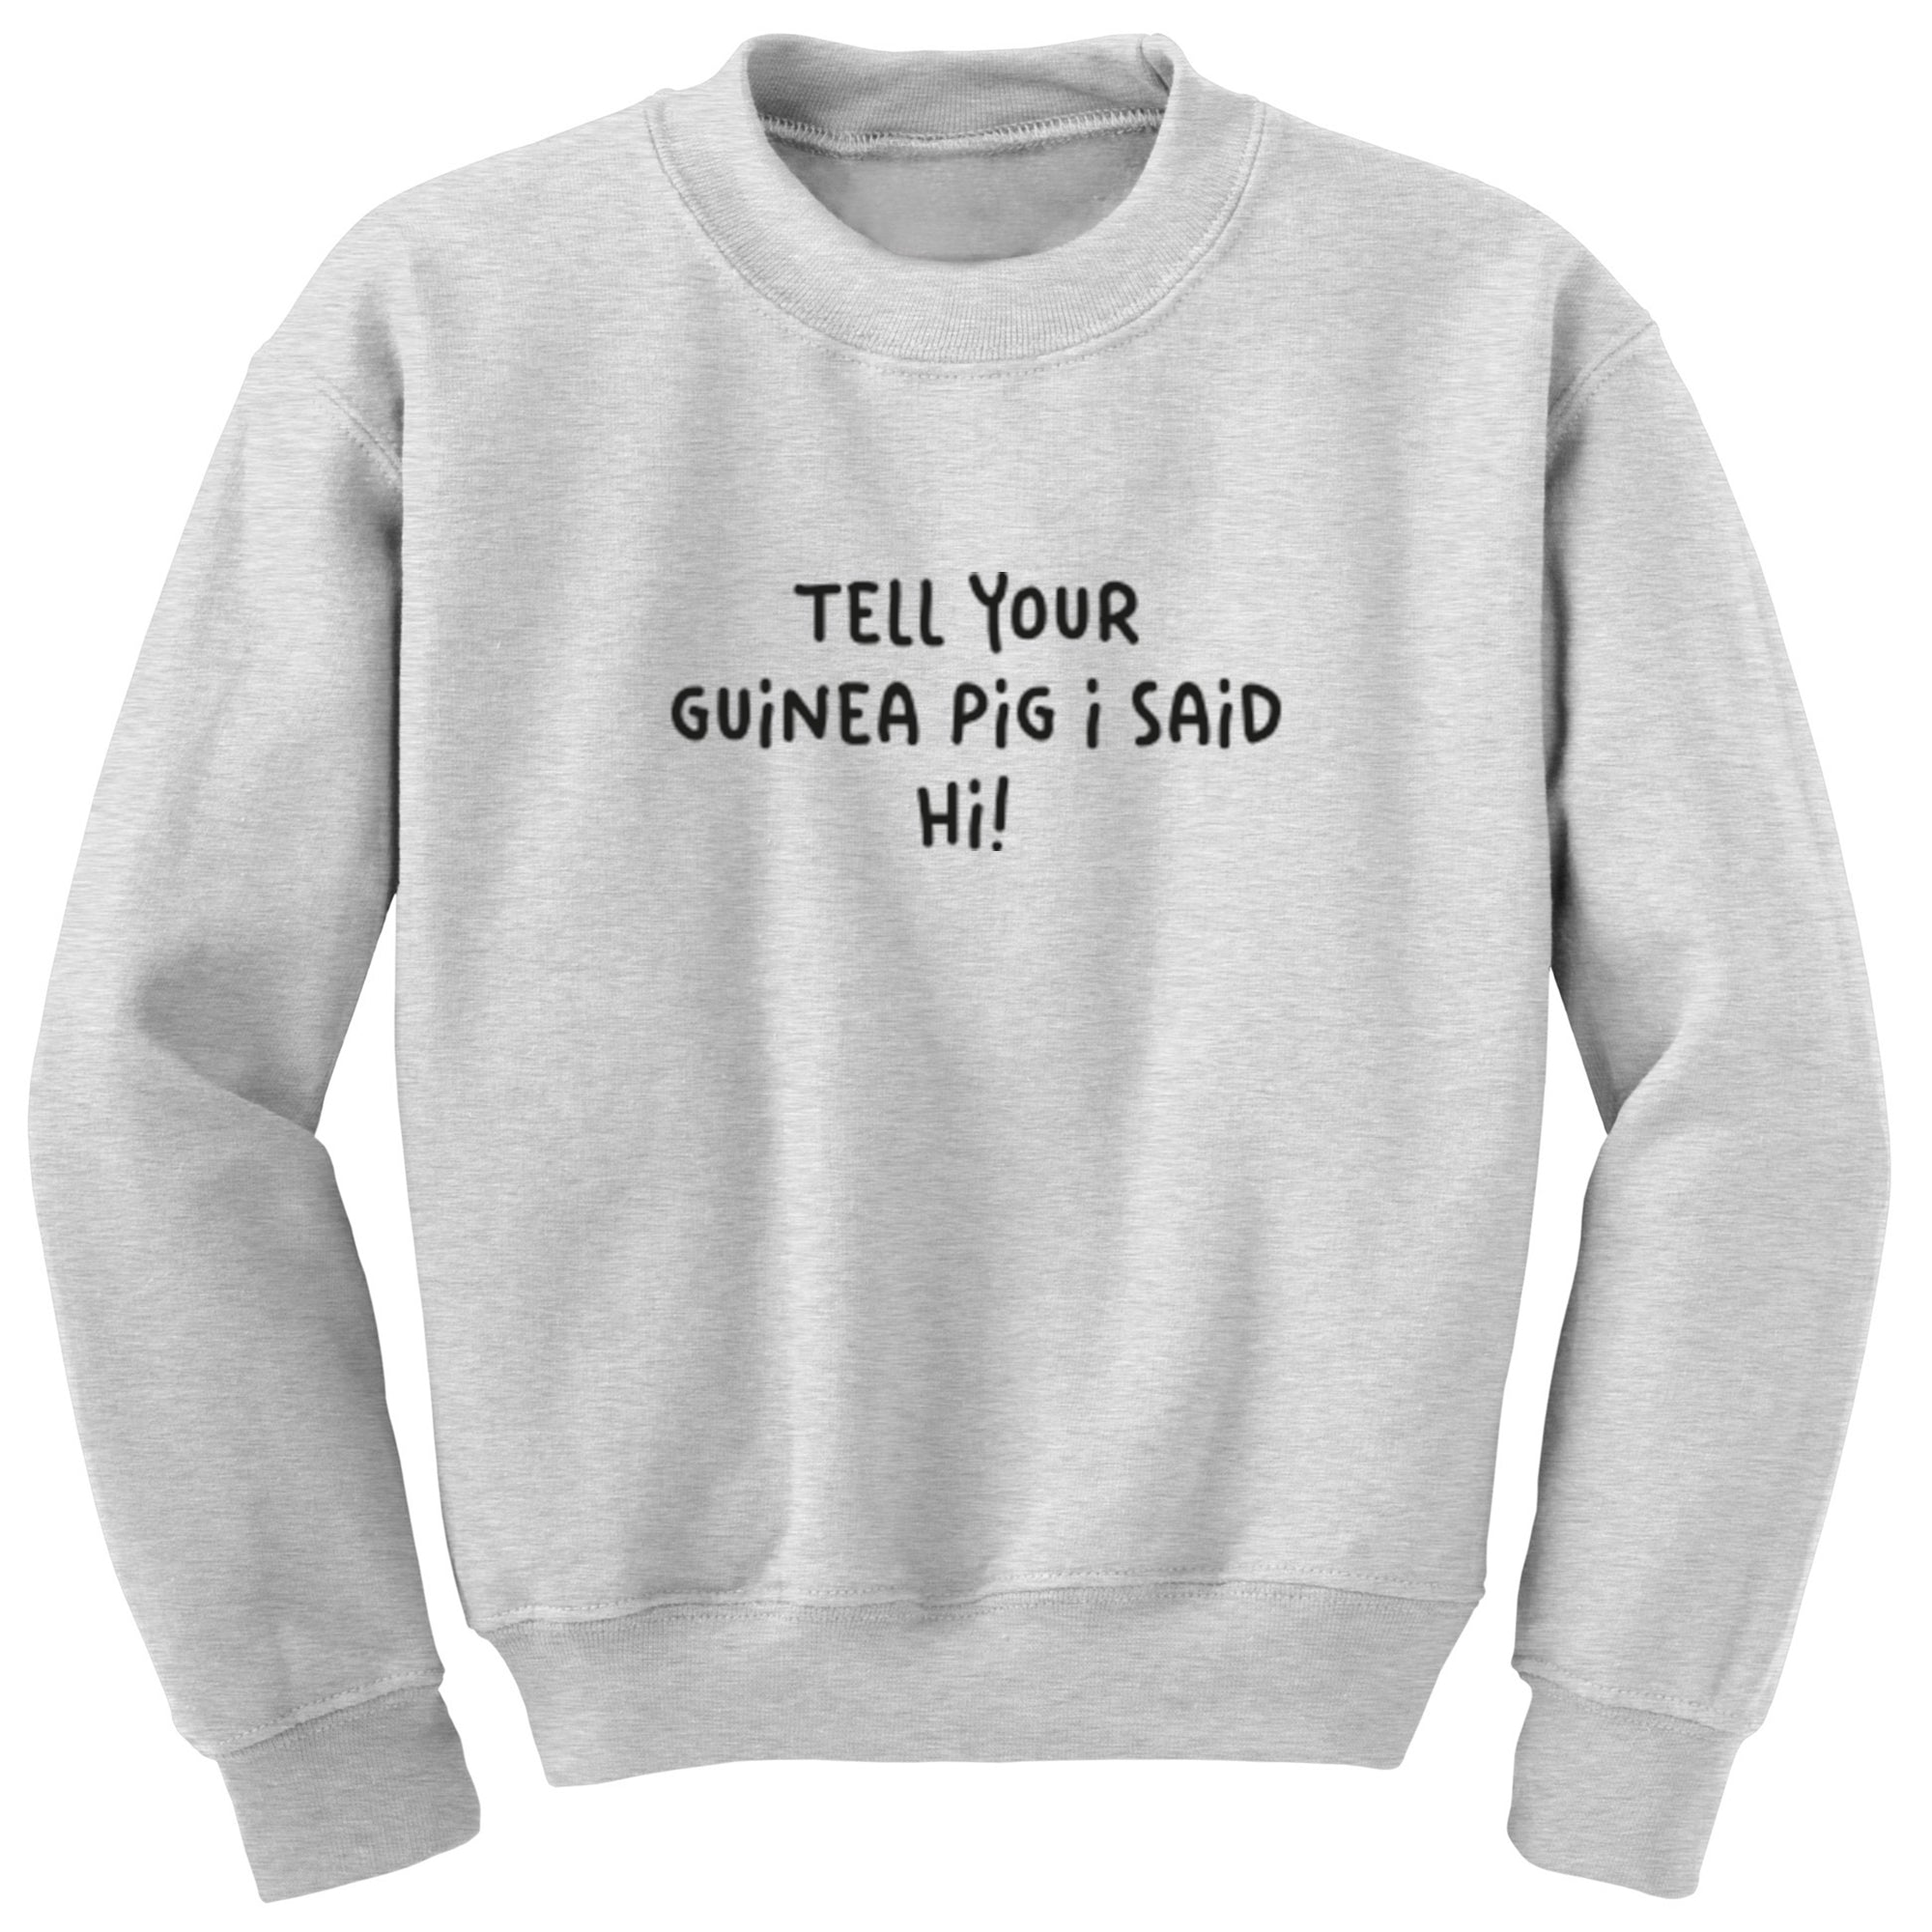 Tell Your Guinea Pig I Said Hi! Unisex Jumper S1188